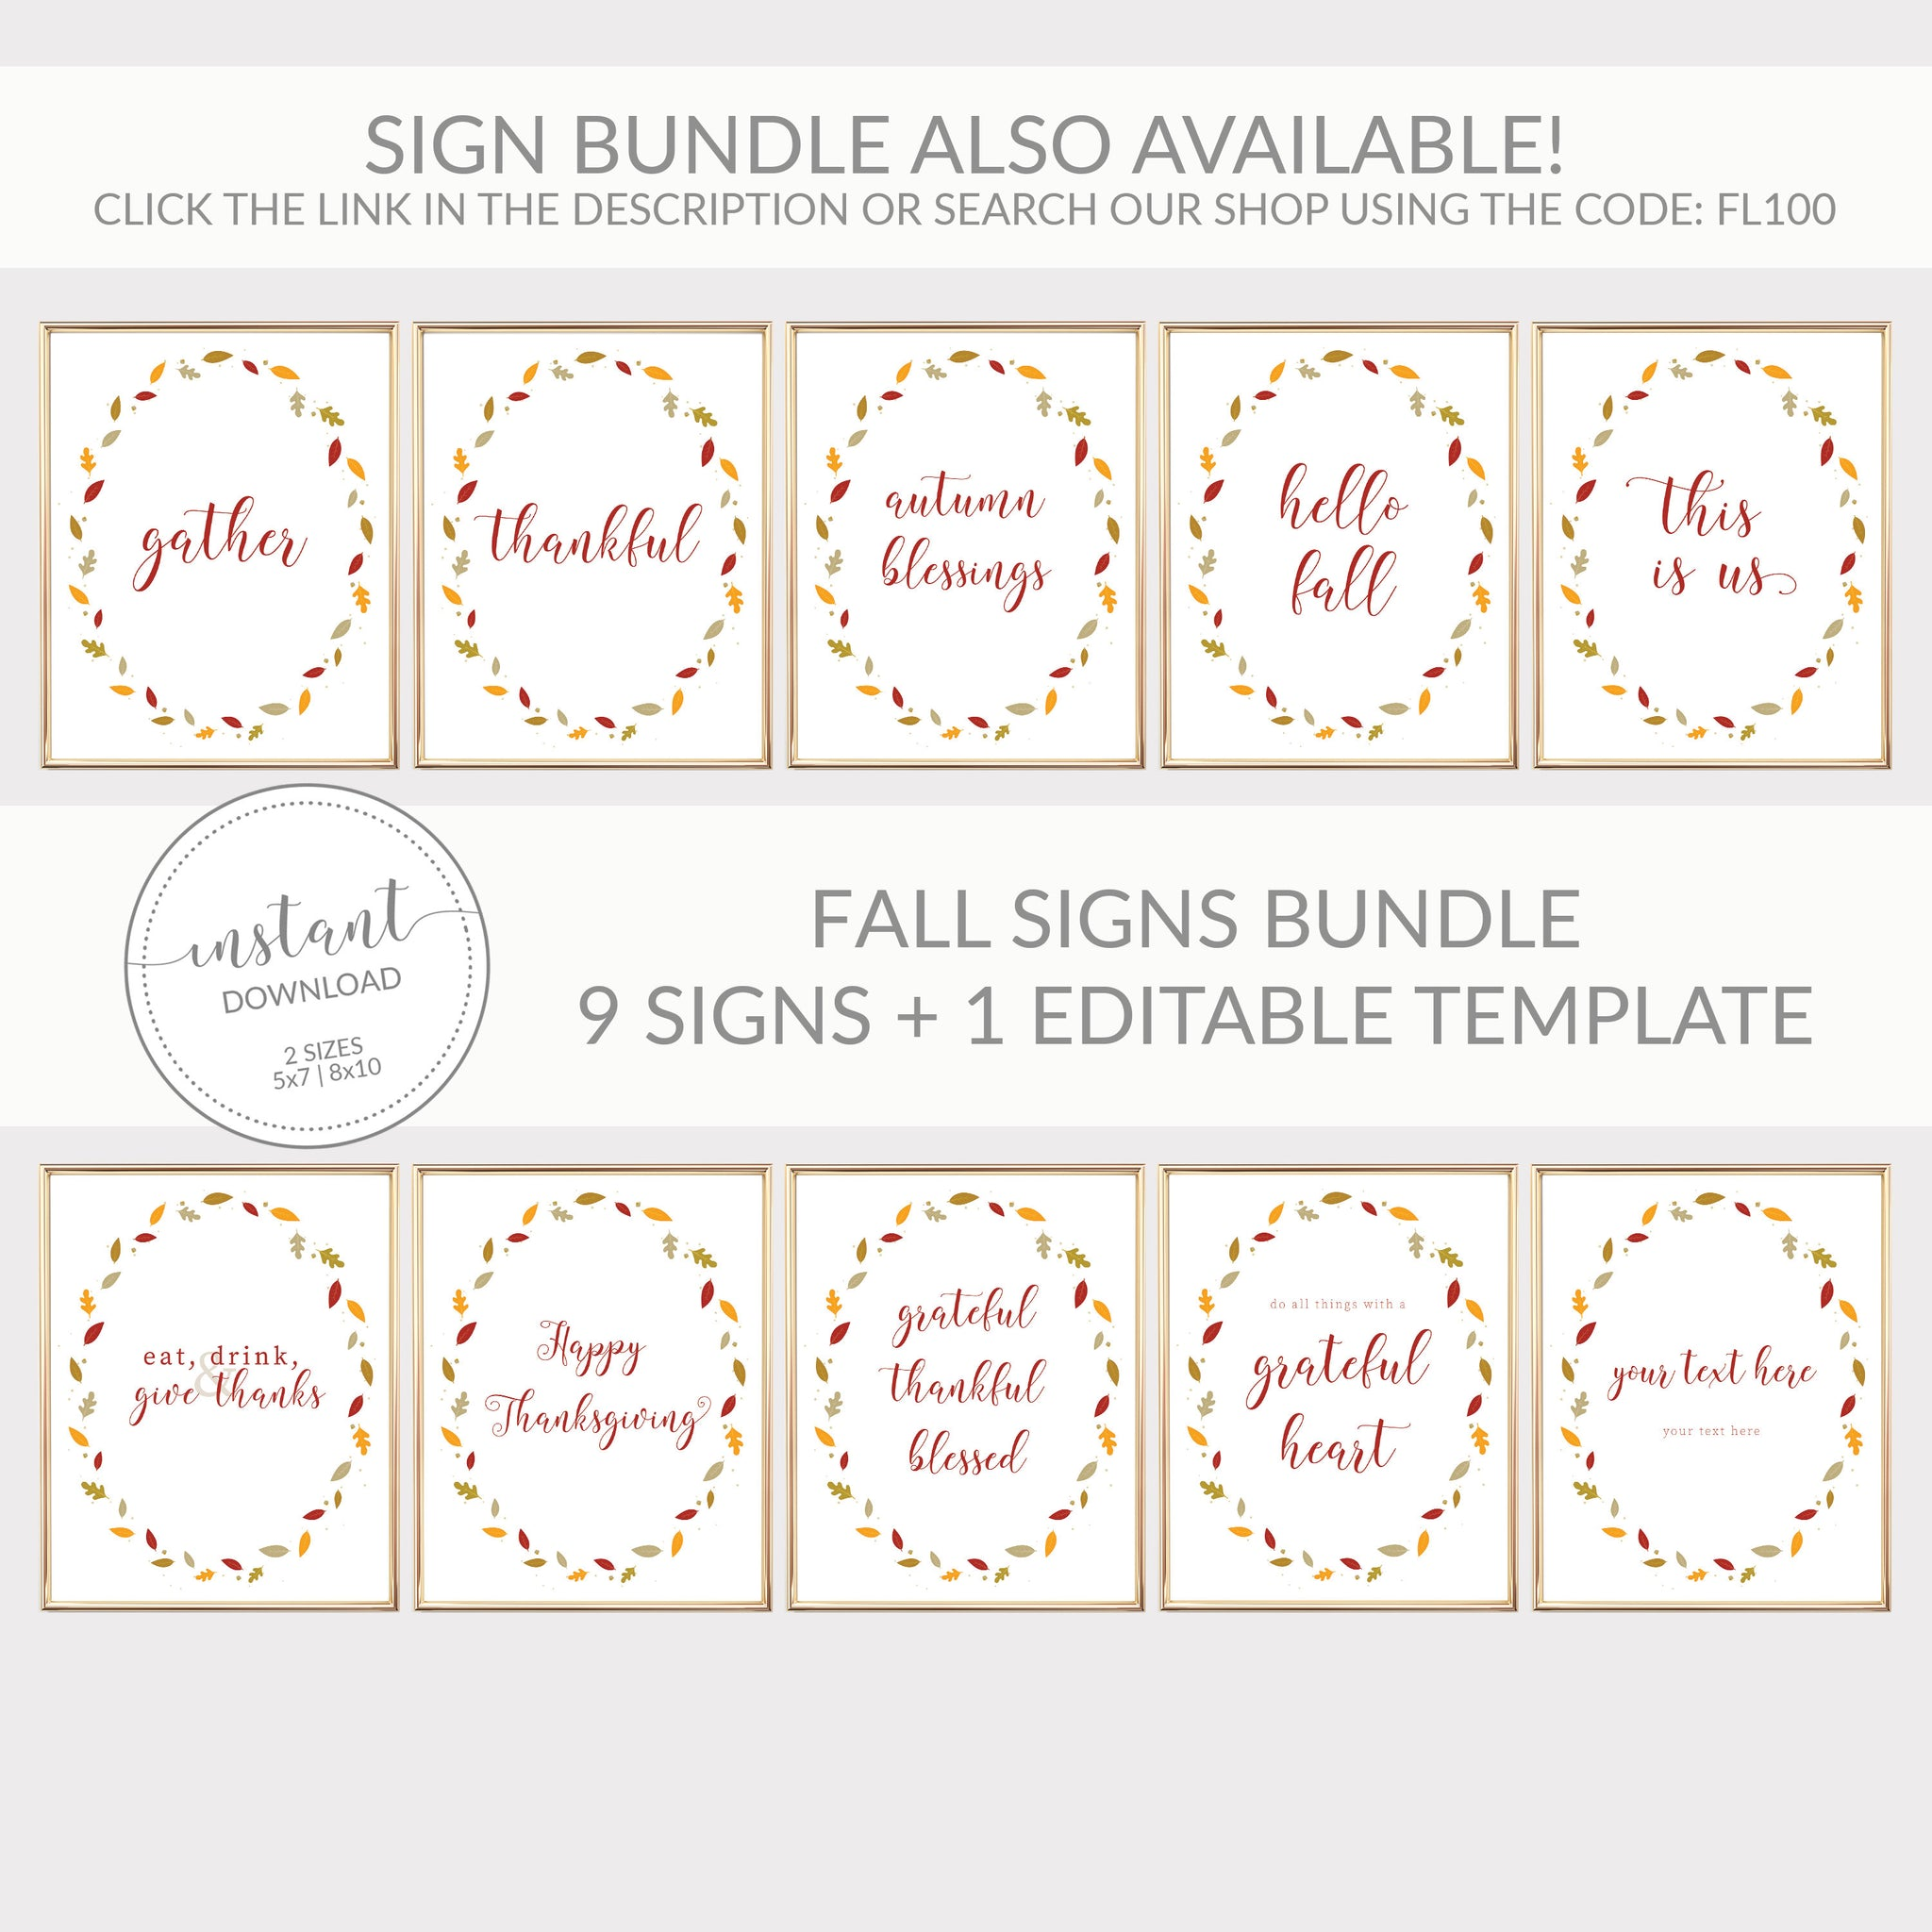 Hello Fall Sign, Hello Fall Printable, Fall Decor Leaves, Fall Decorations for Home, Fall Printable Art, INSTANT DOWNLOAD - FL100 - @PlumPolkaDot